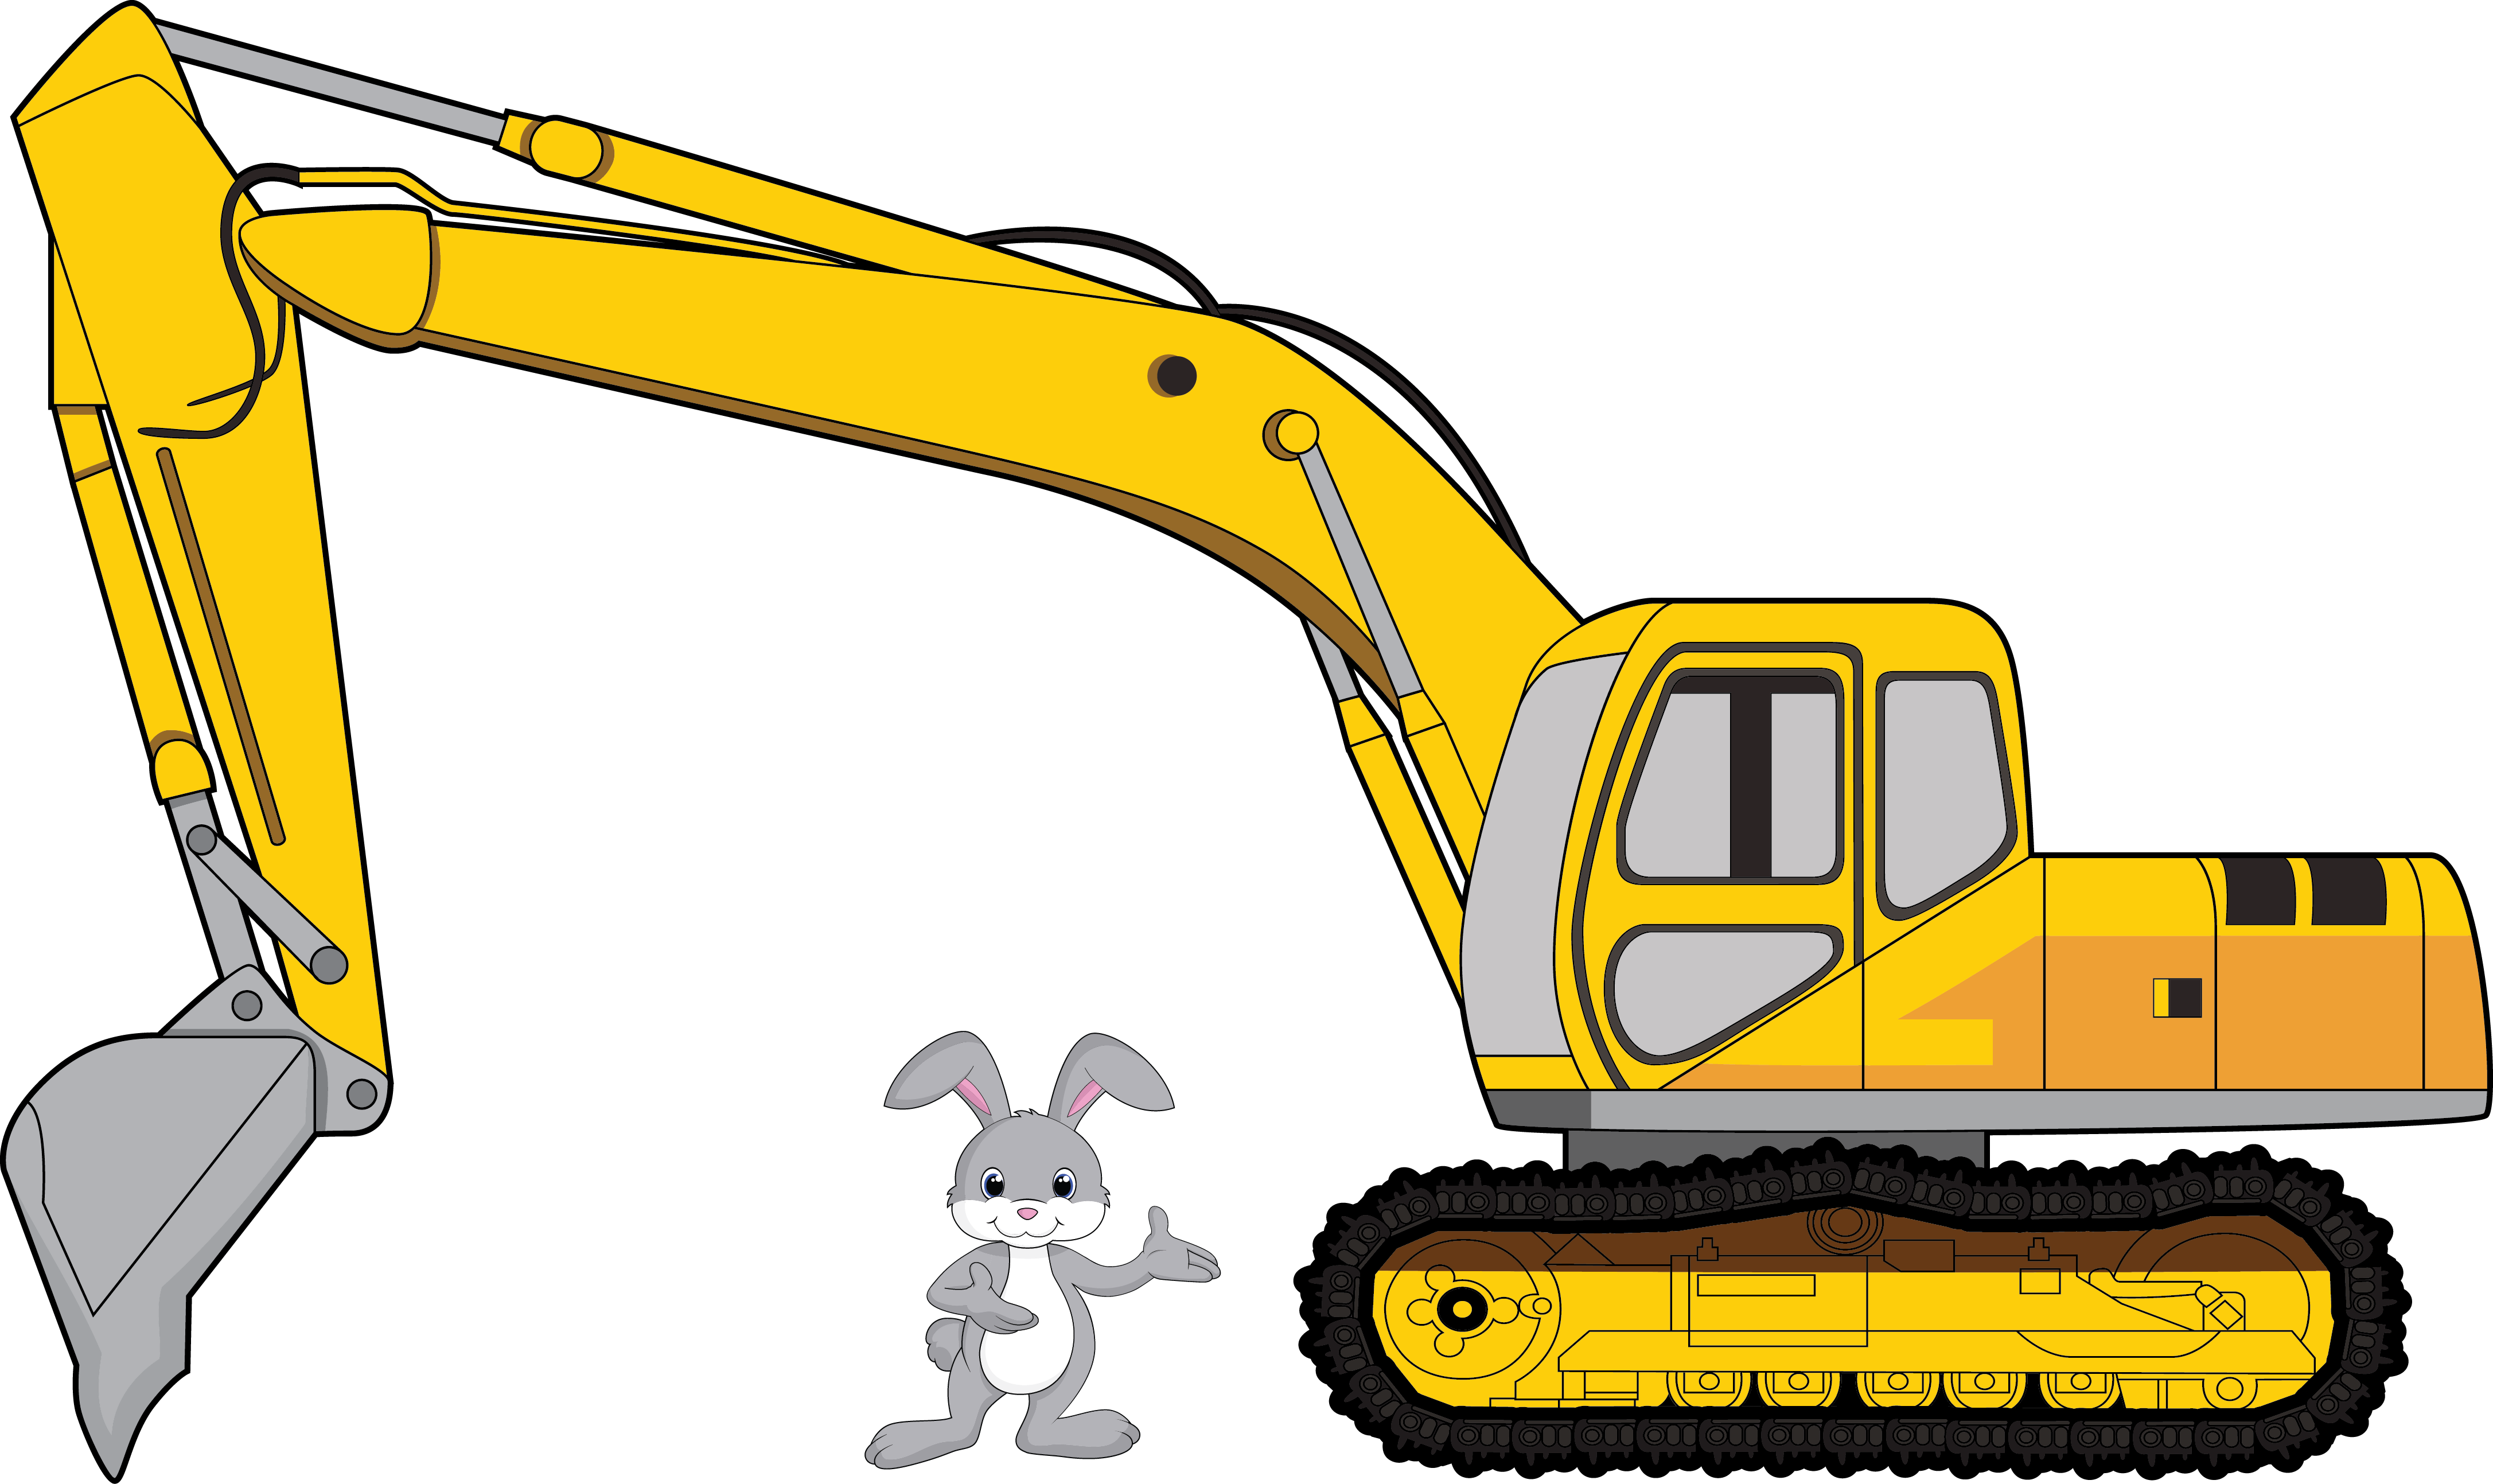 Bunny with franchino insurance. Backhoe clipart contractor